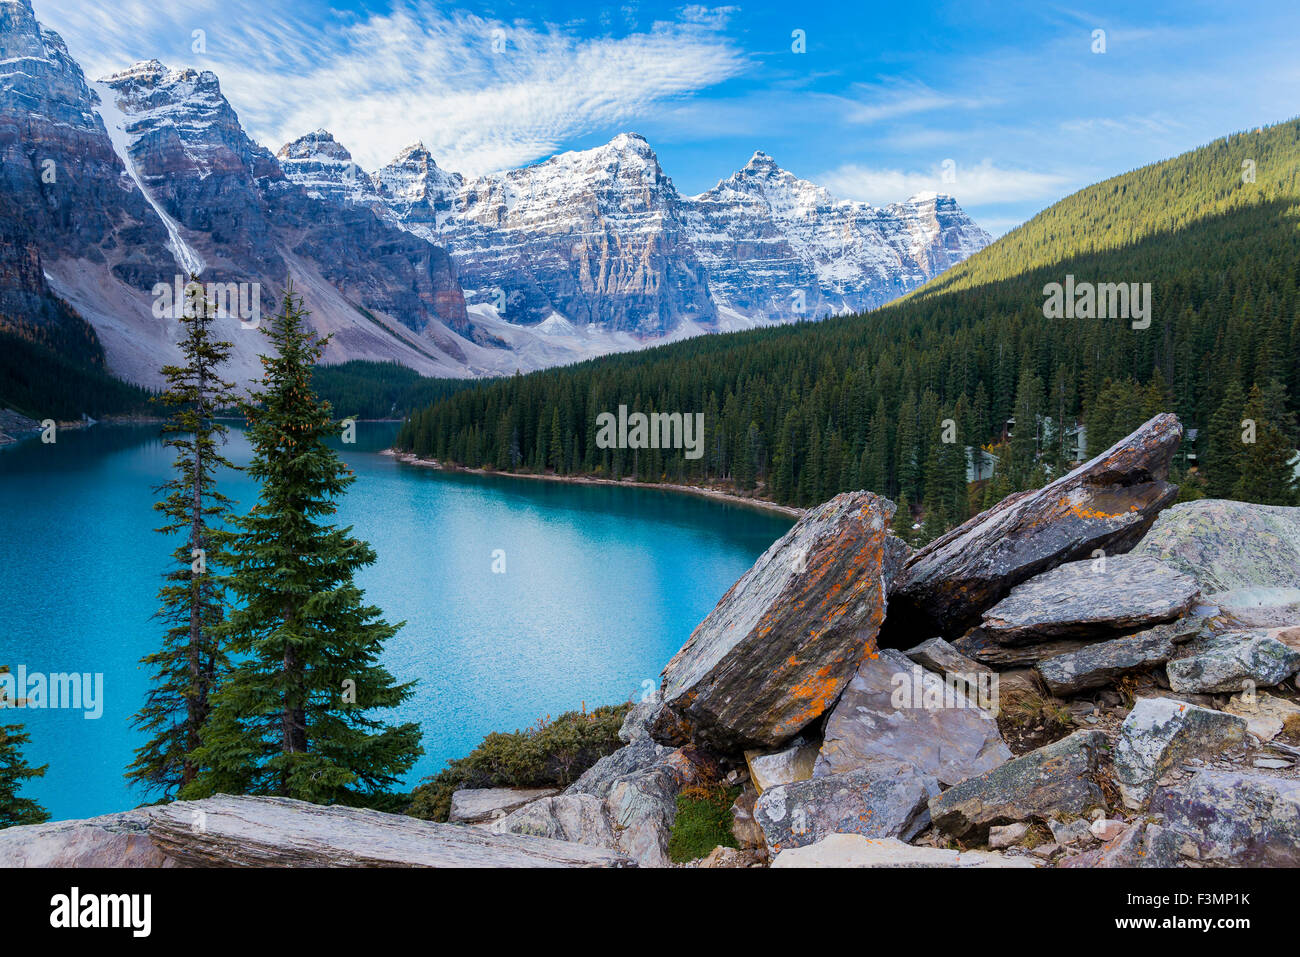 Moraine Lake, Banff National Park, Alberta, Canada, - Stock Image